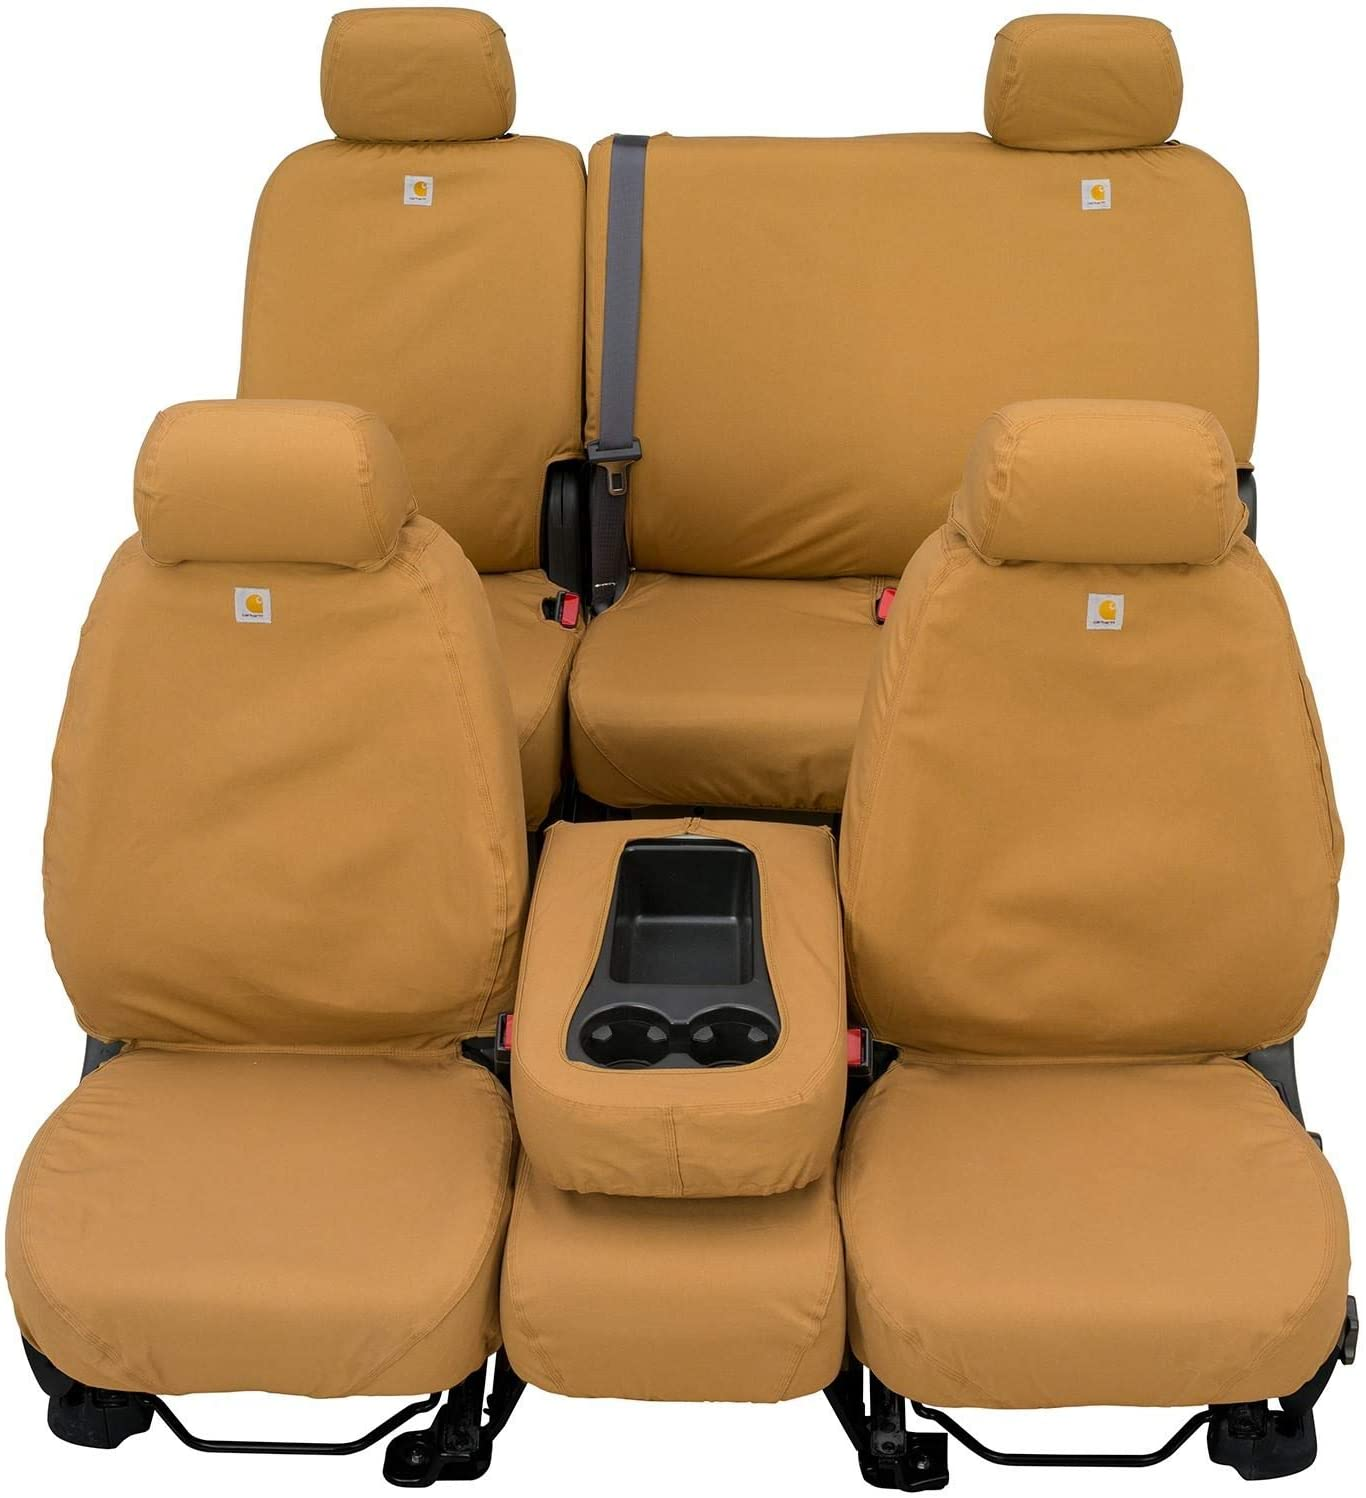 Covercraft Carhartt SeatSaver Front Row Custom Fit Seat Cover for Select Ram Models - Duck Weave (Brown) (SSC3457CABN)